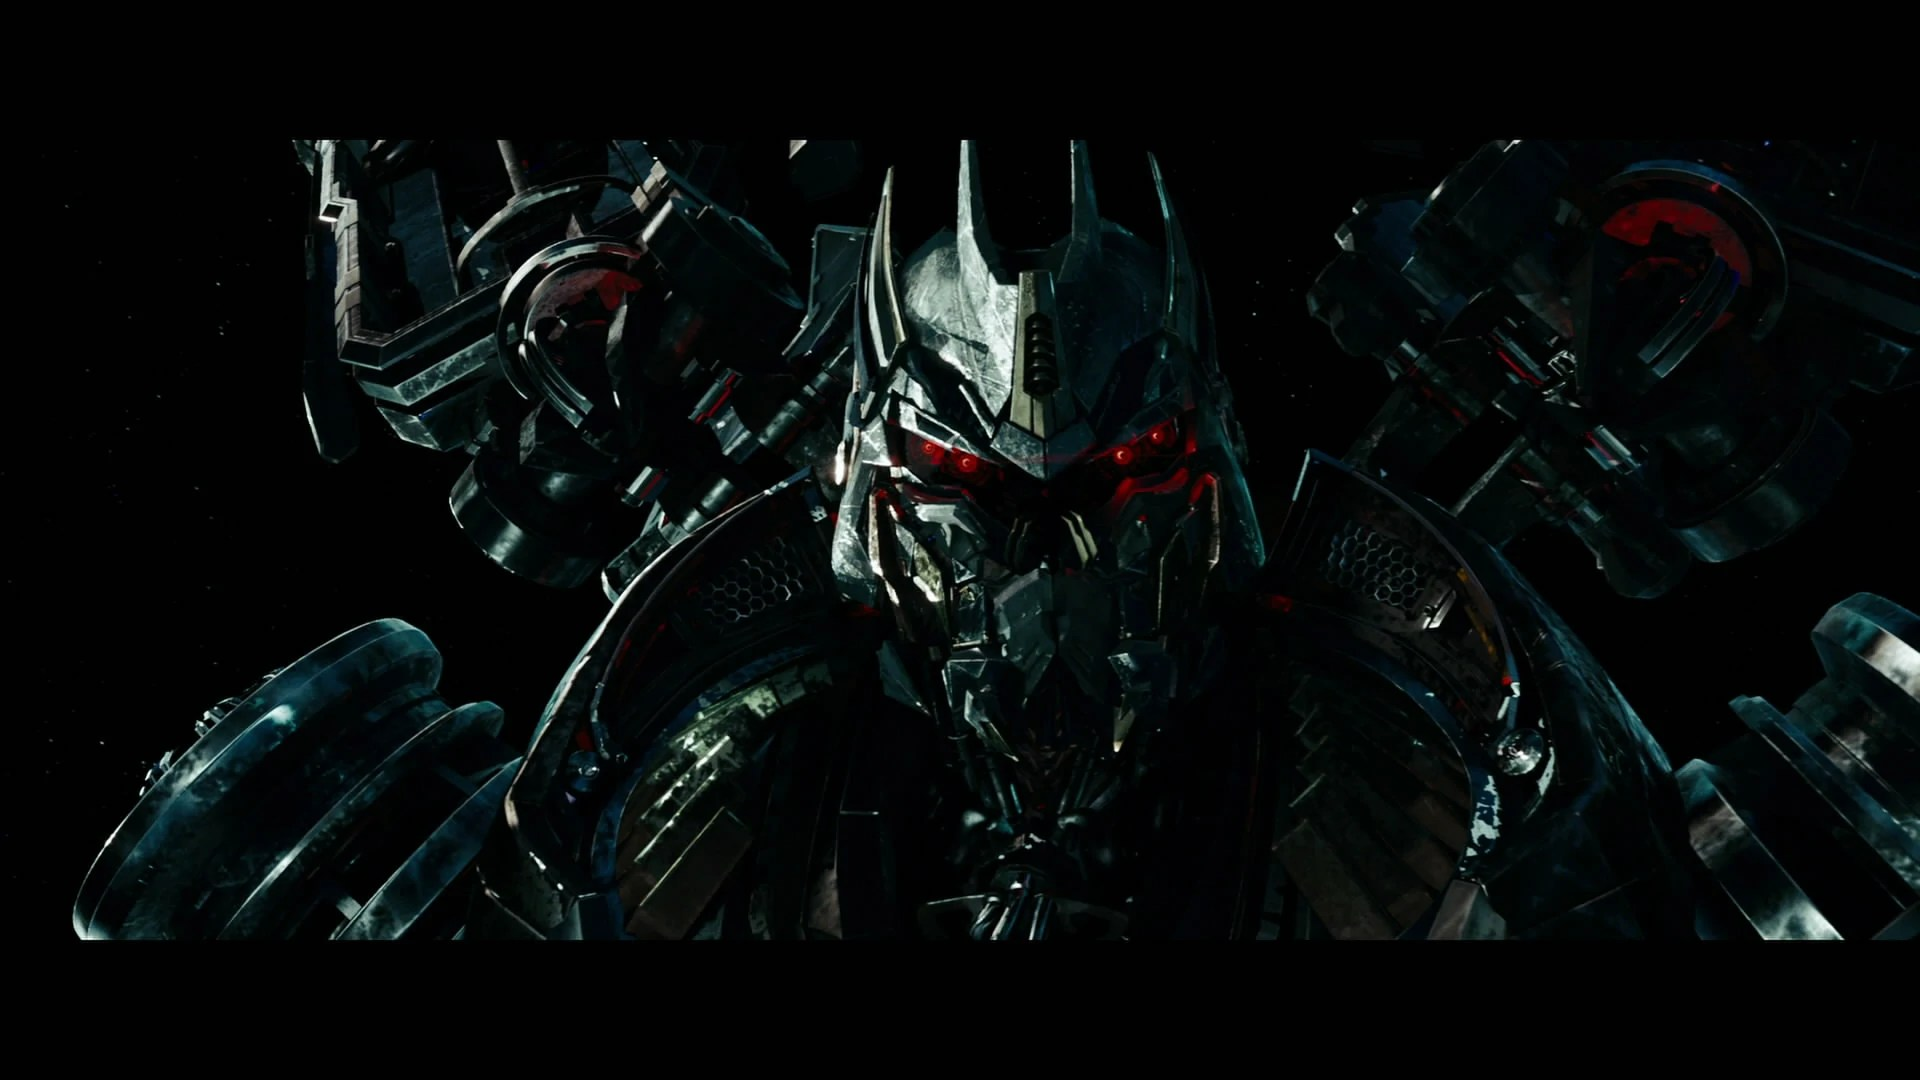 Transformers Fall Of Cybertron Wallpaper 1920x1080 Image Rotf Soundwave Film Face Jpg Teletraan I The